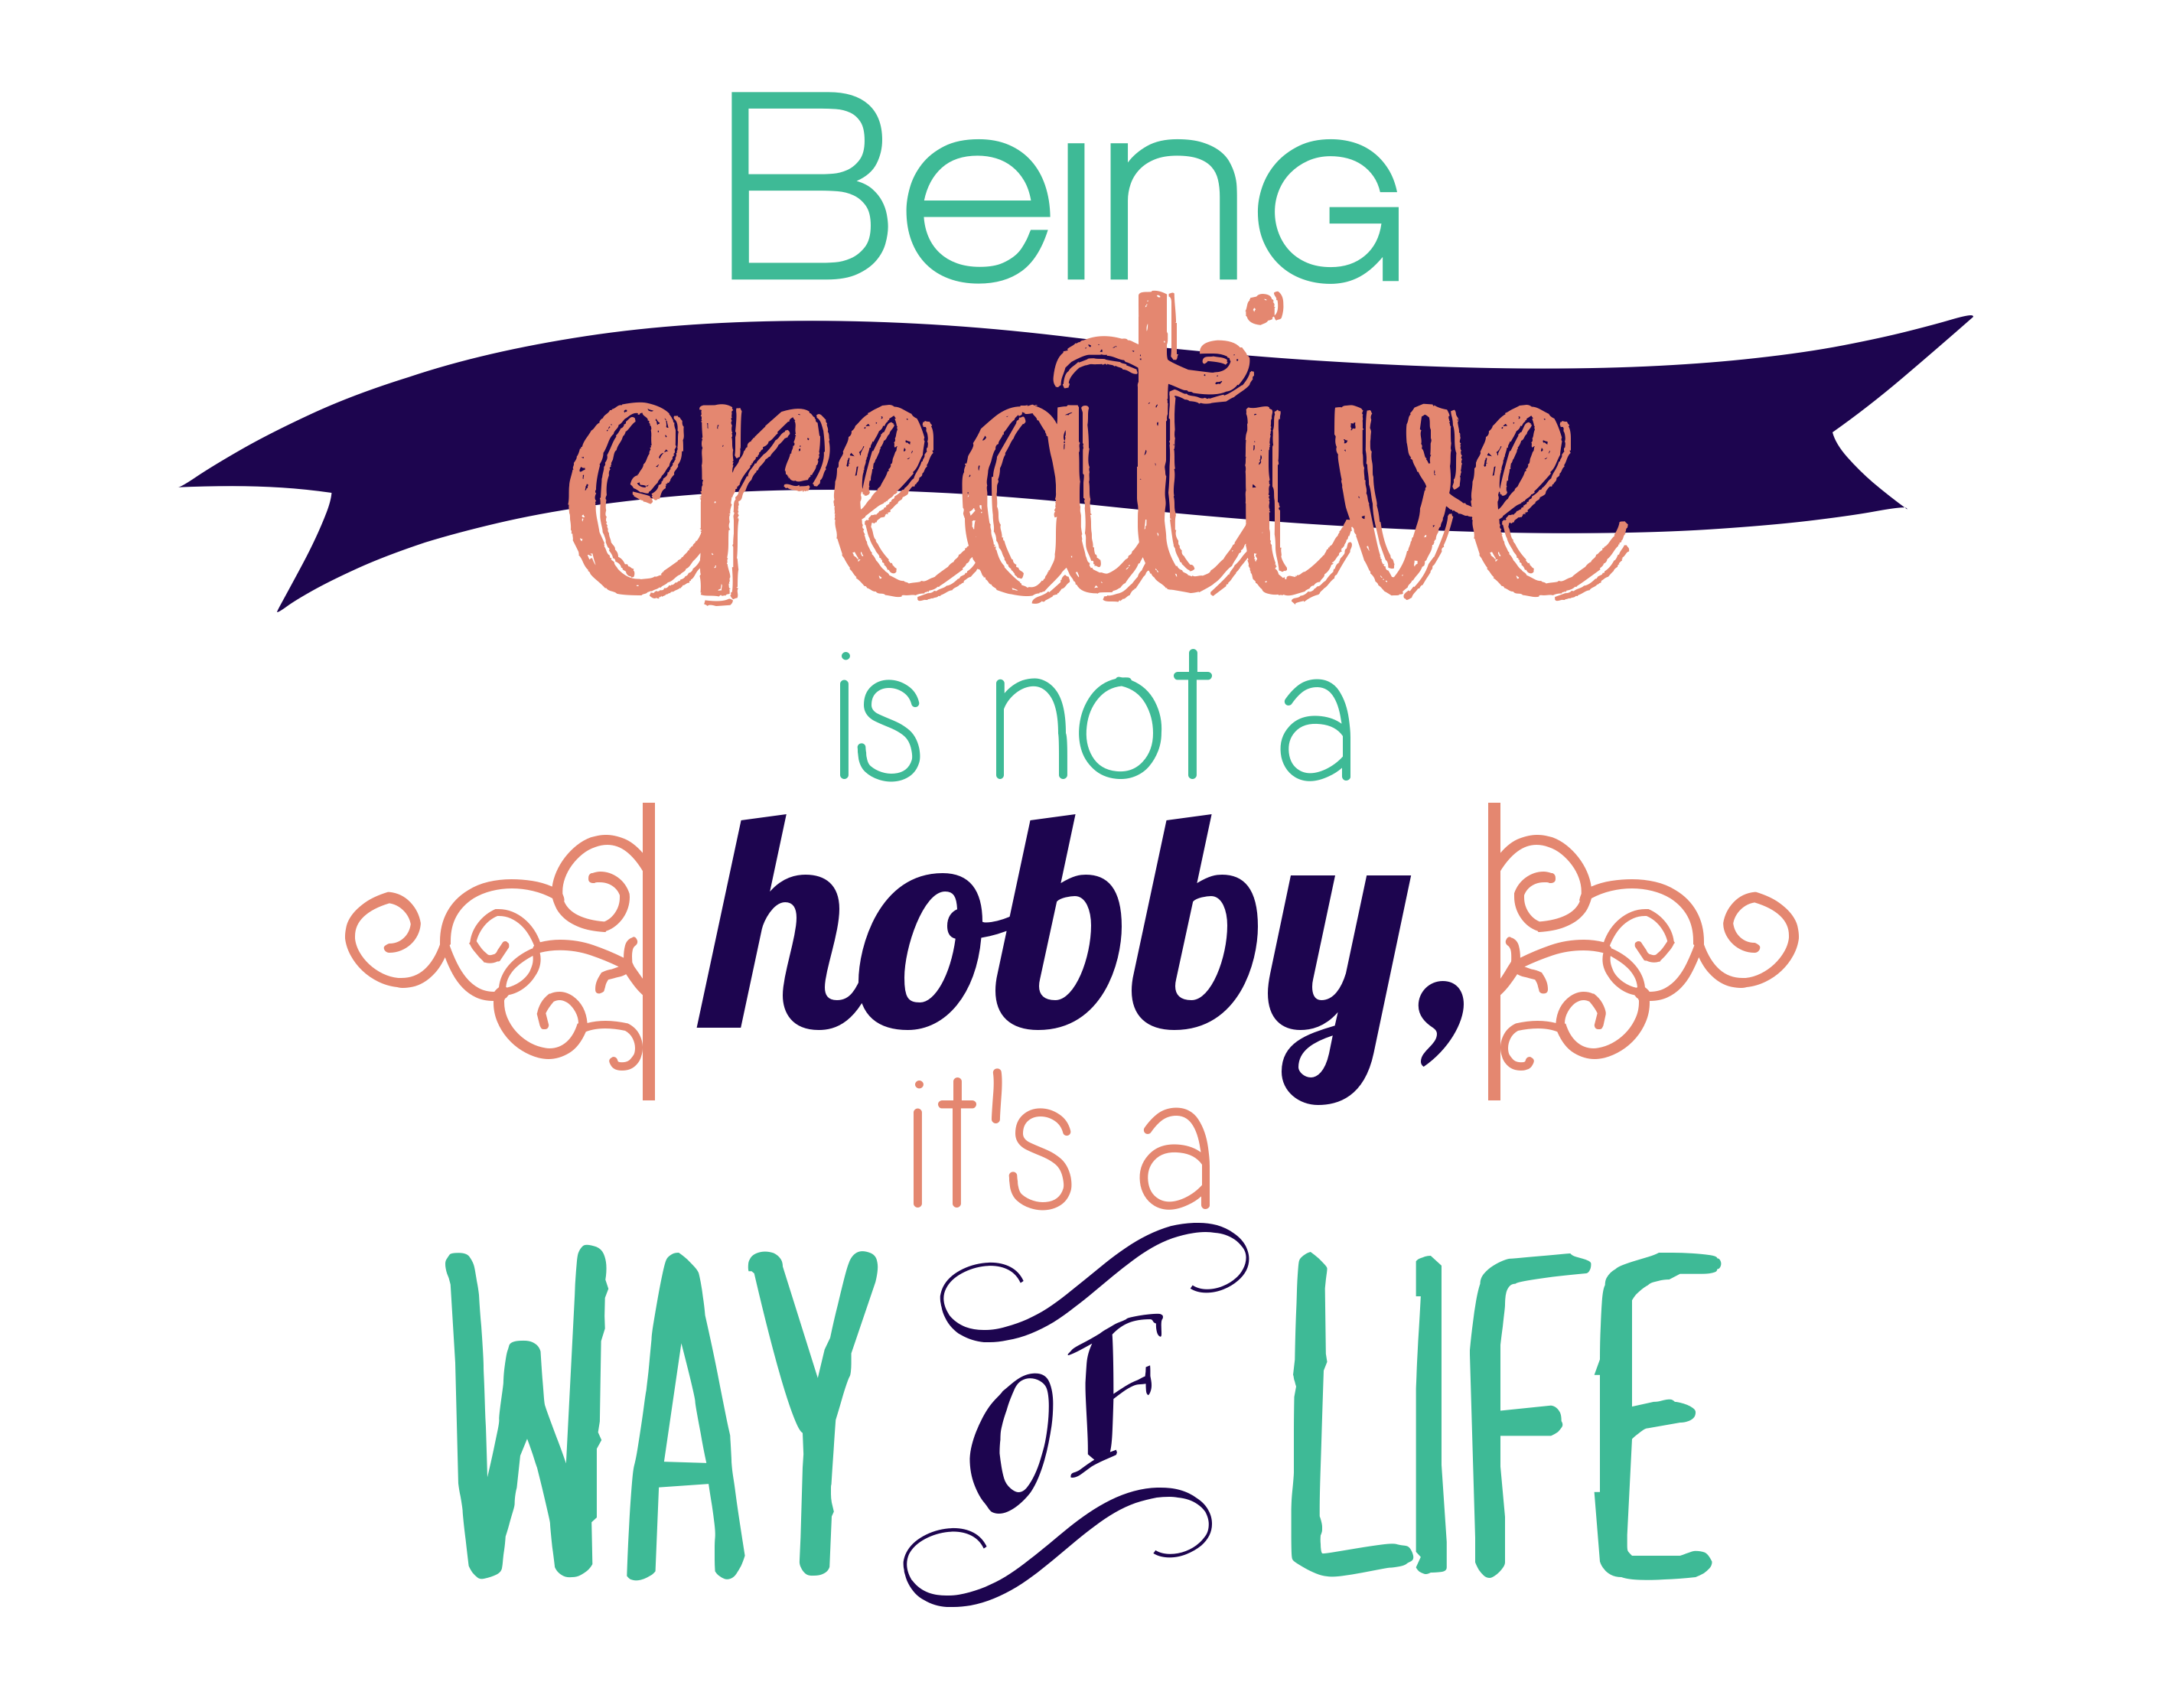 Creative, a way of life   Creativity quotes, Inspirational ...